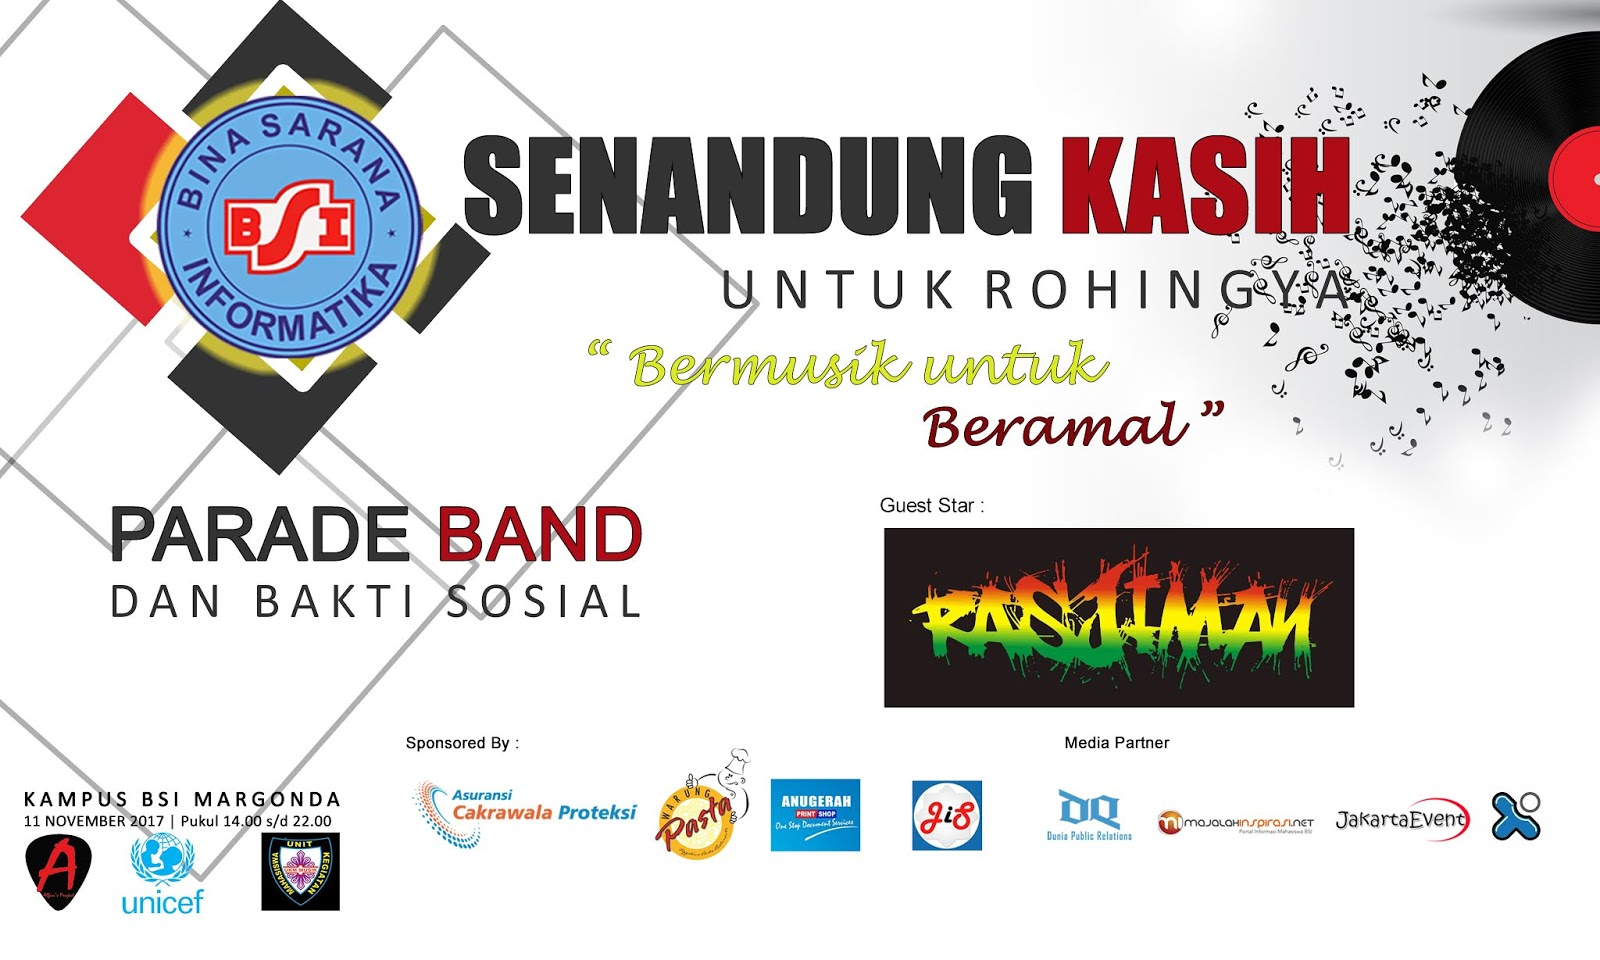 Contoh Desain Backdrop Contoh Desain Backdrop Panggung Event Musik Alfan S Project